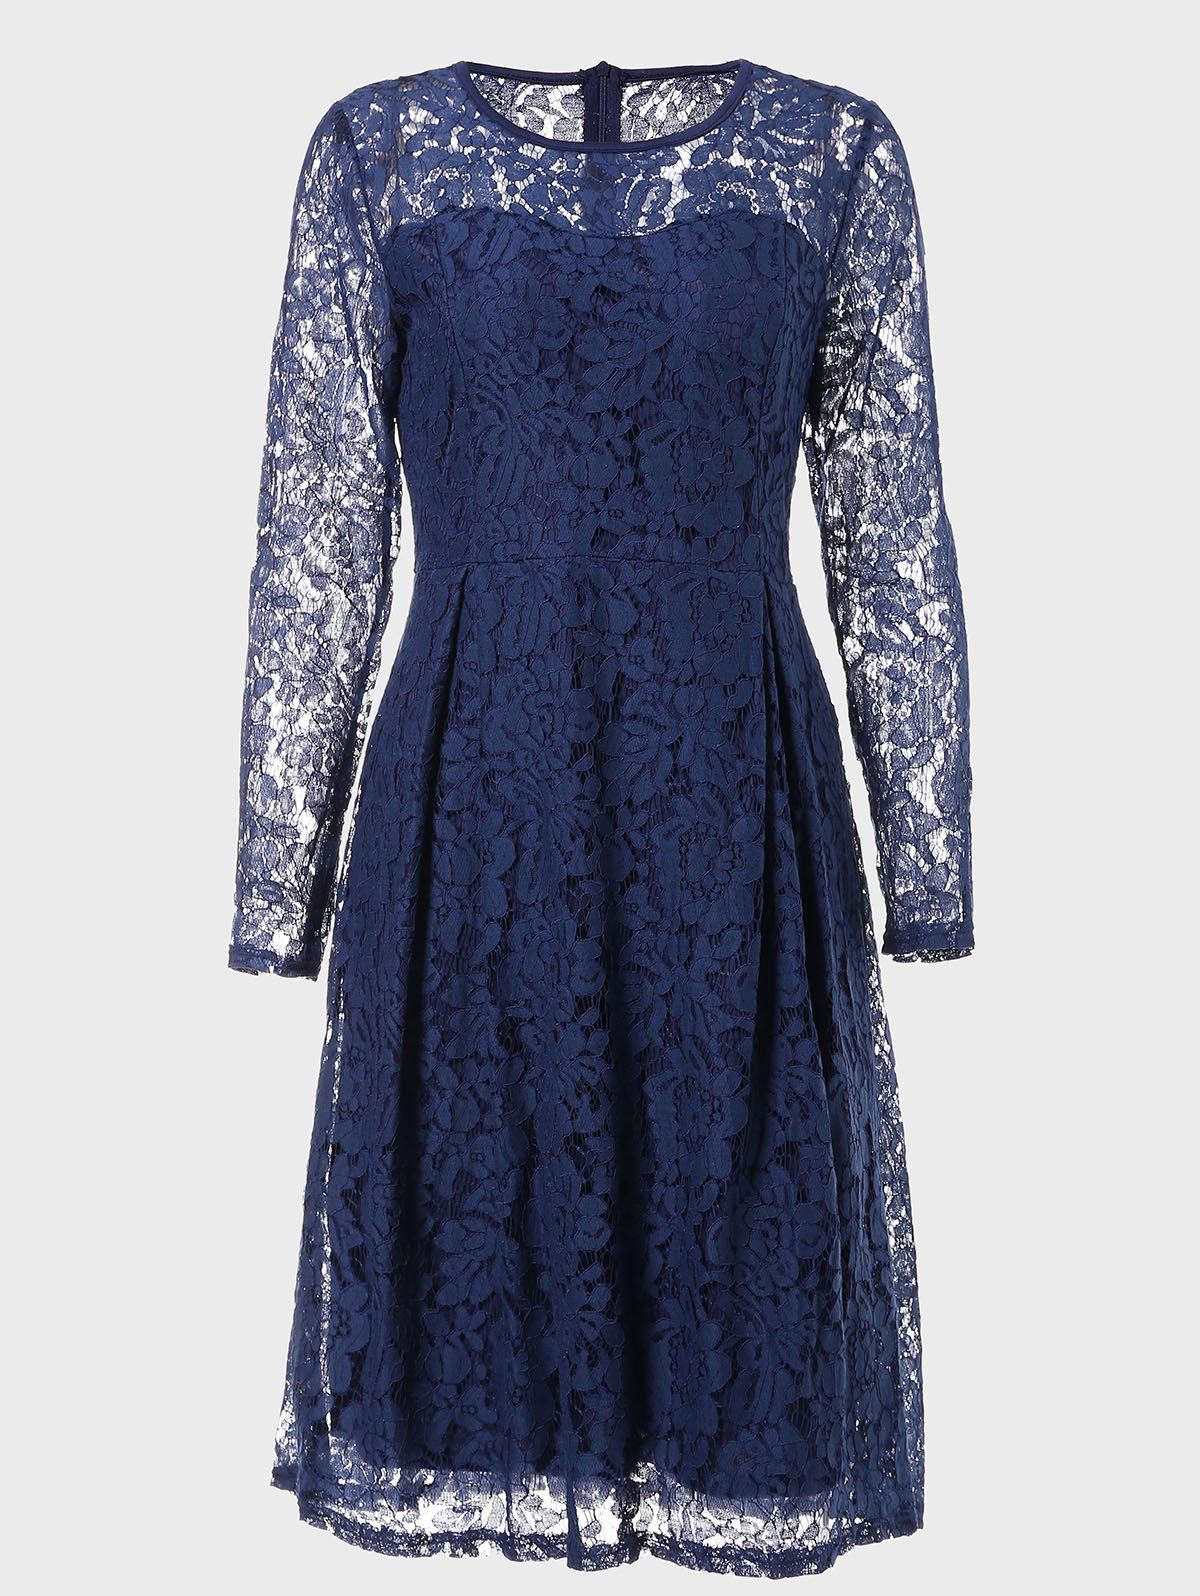 New Round Neck Long Sleeve A-line Lace Dress